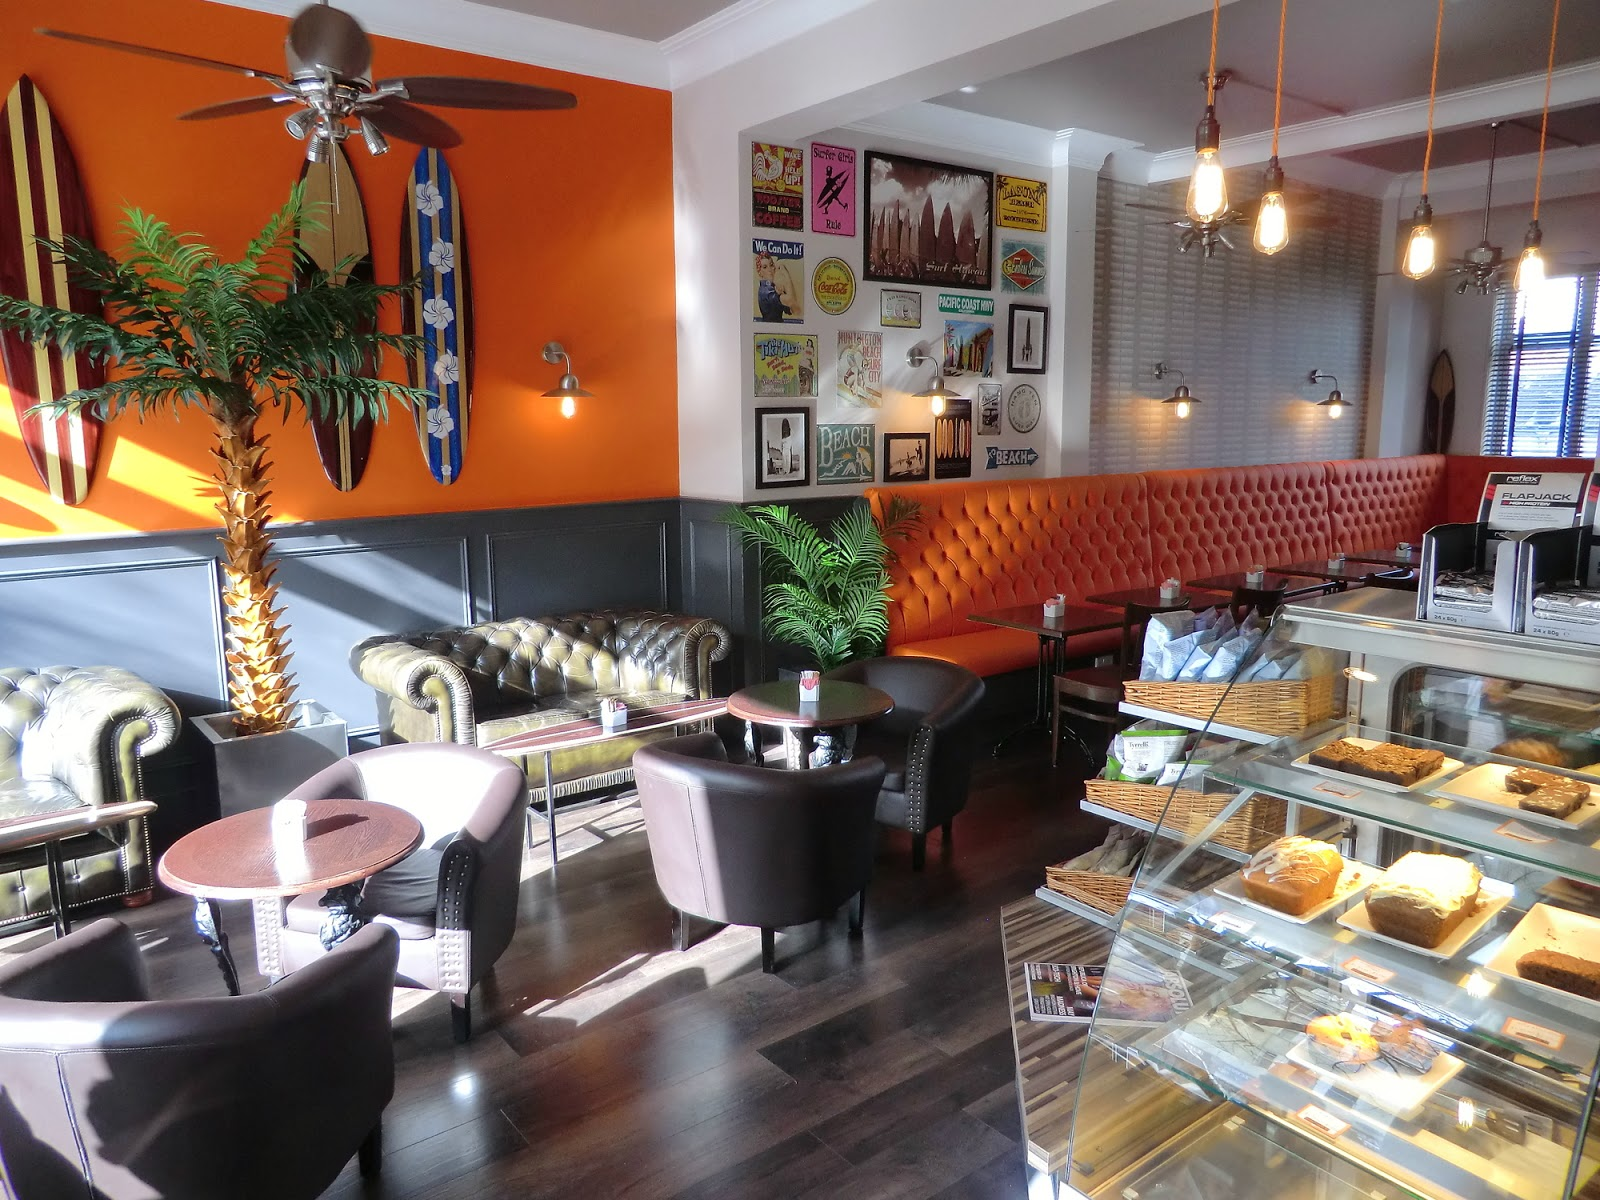 Lovefit Café: A Work-Friendly Place in Brighton